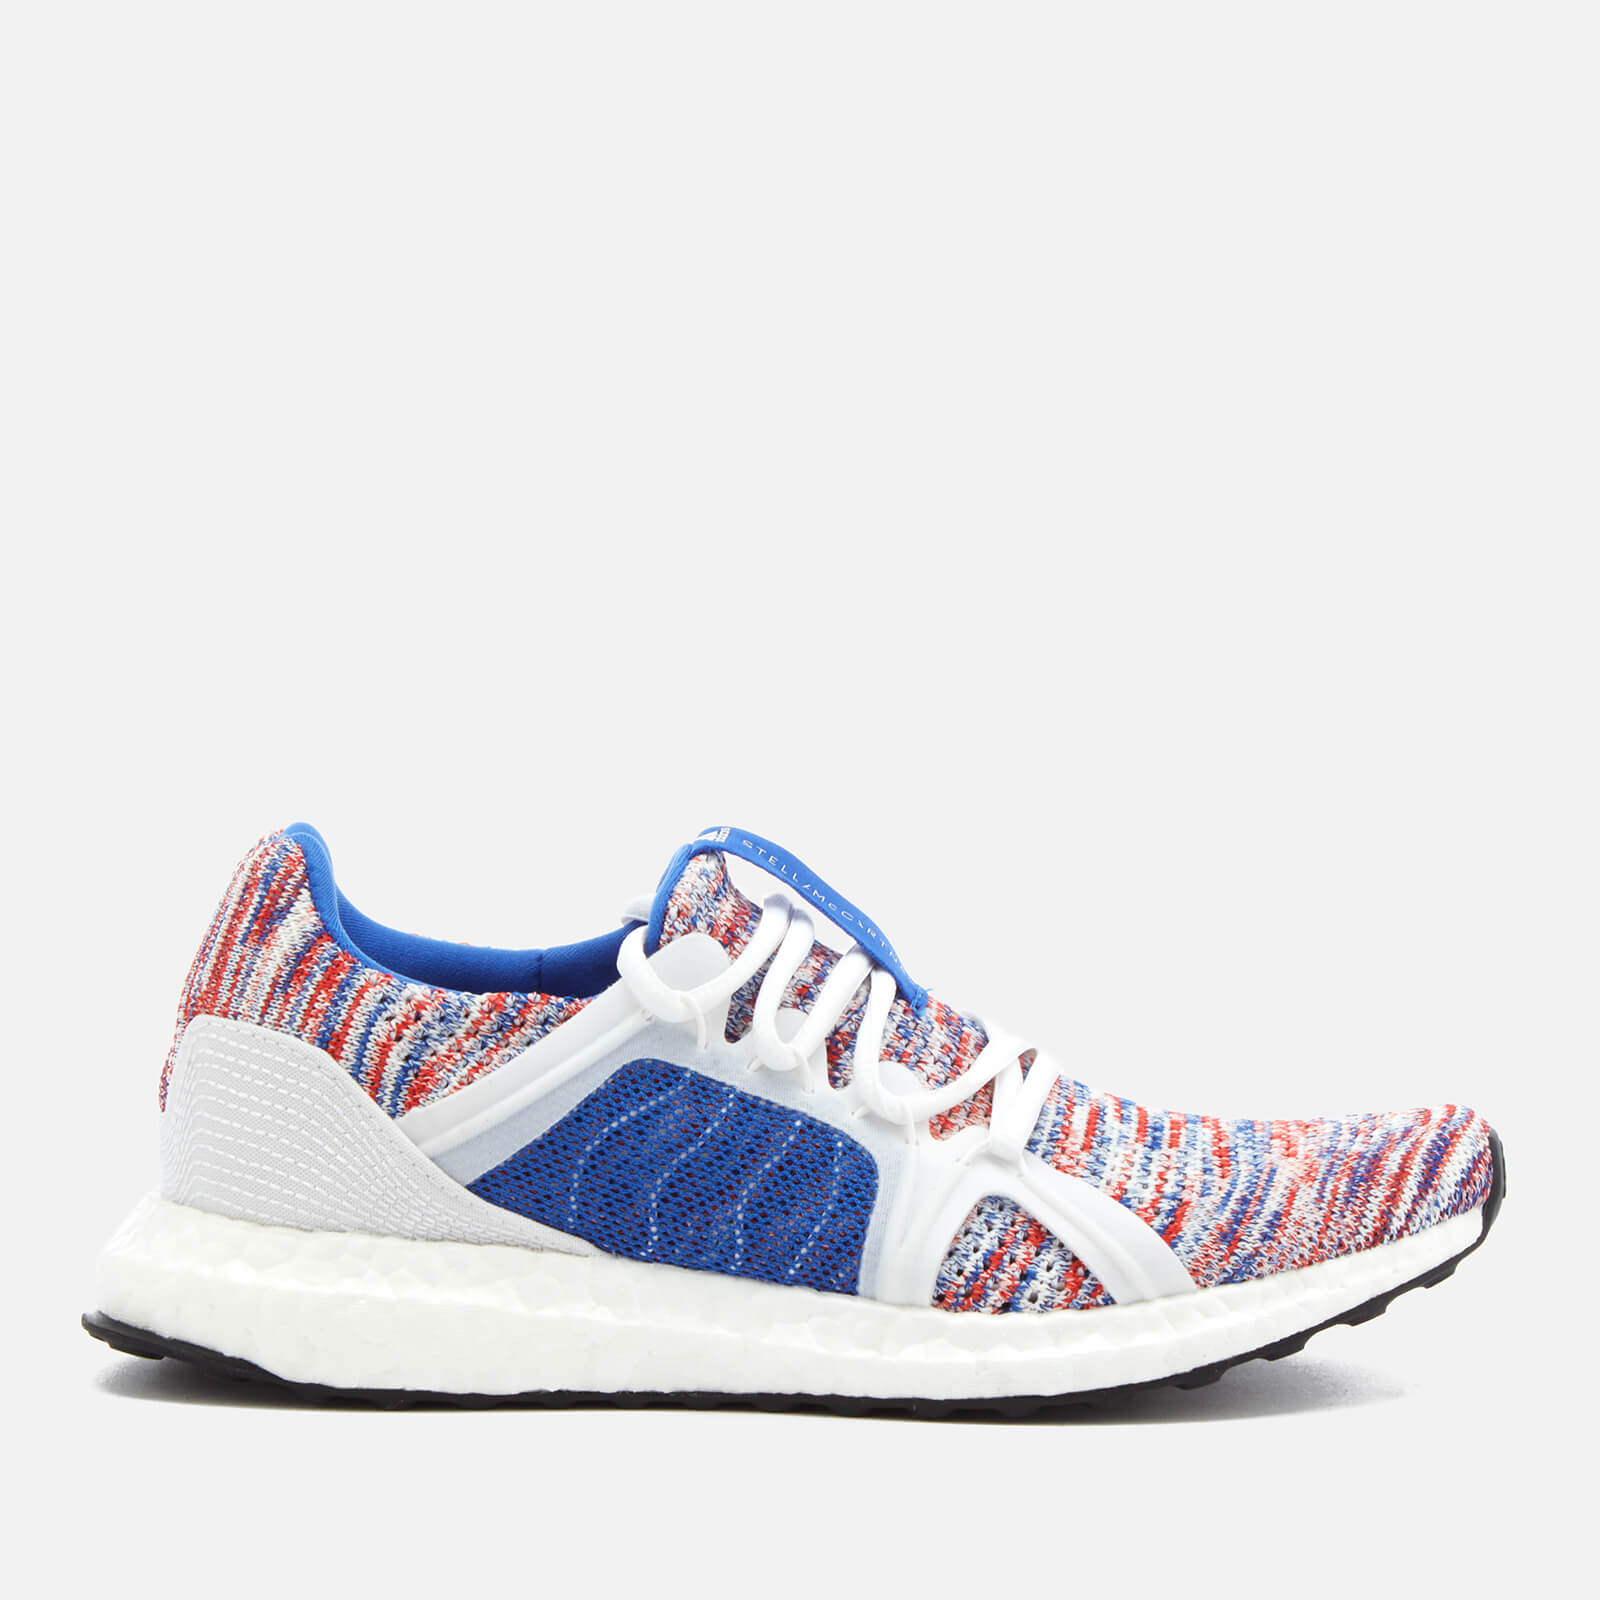 7abb86642 adidas by Stella McCartney Women s Ultraboost Parley Trainers - Hi Res  Blue Core White Dark Caliso - Free UK Delivery over £50